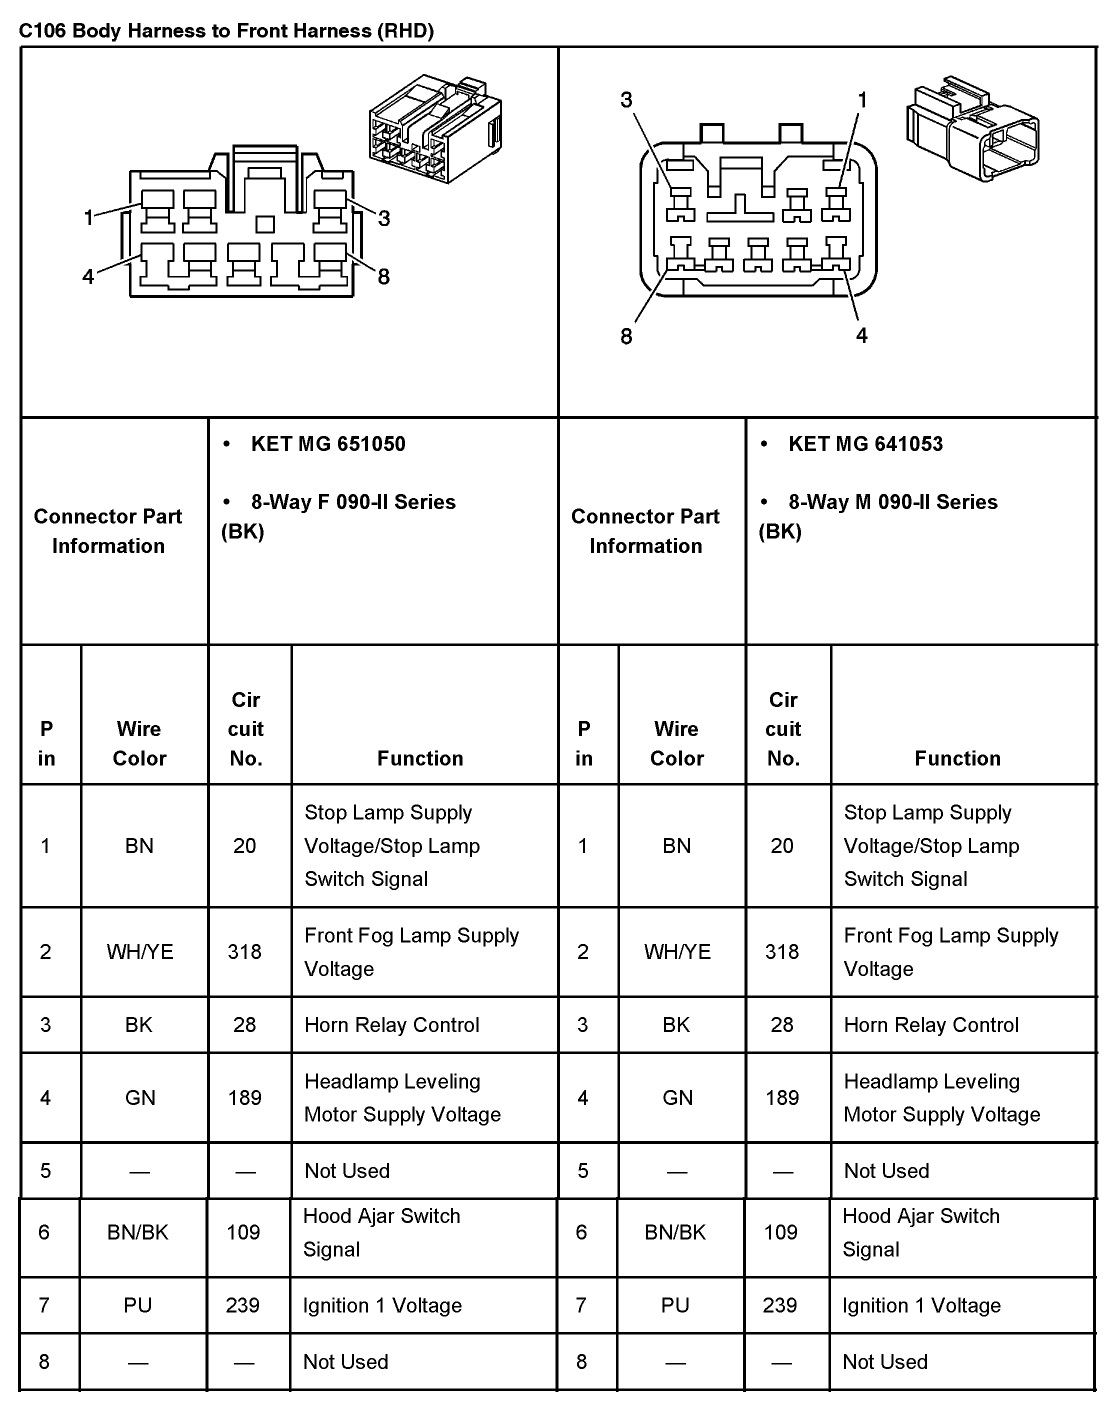 7331d1383704576 2005 aveo master connector list diagrams conn3 jpg 2008 chevy aveo fuse box diagram chevy aveo door lock diagram 2013 chevy cruze fuse box diagram at aneh.co